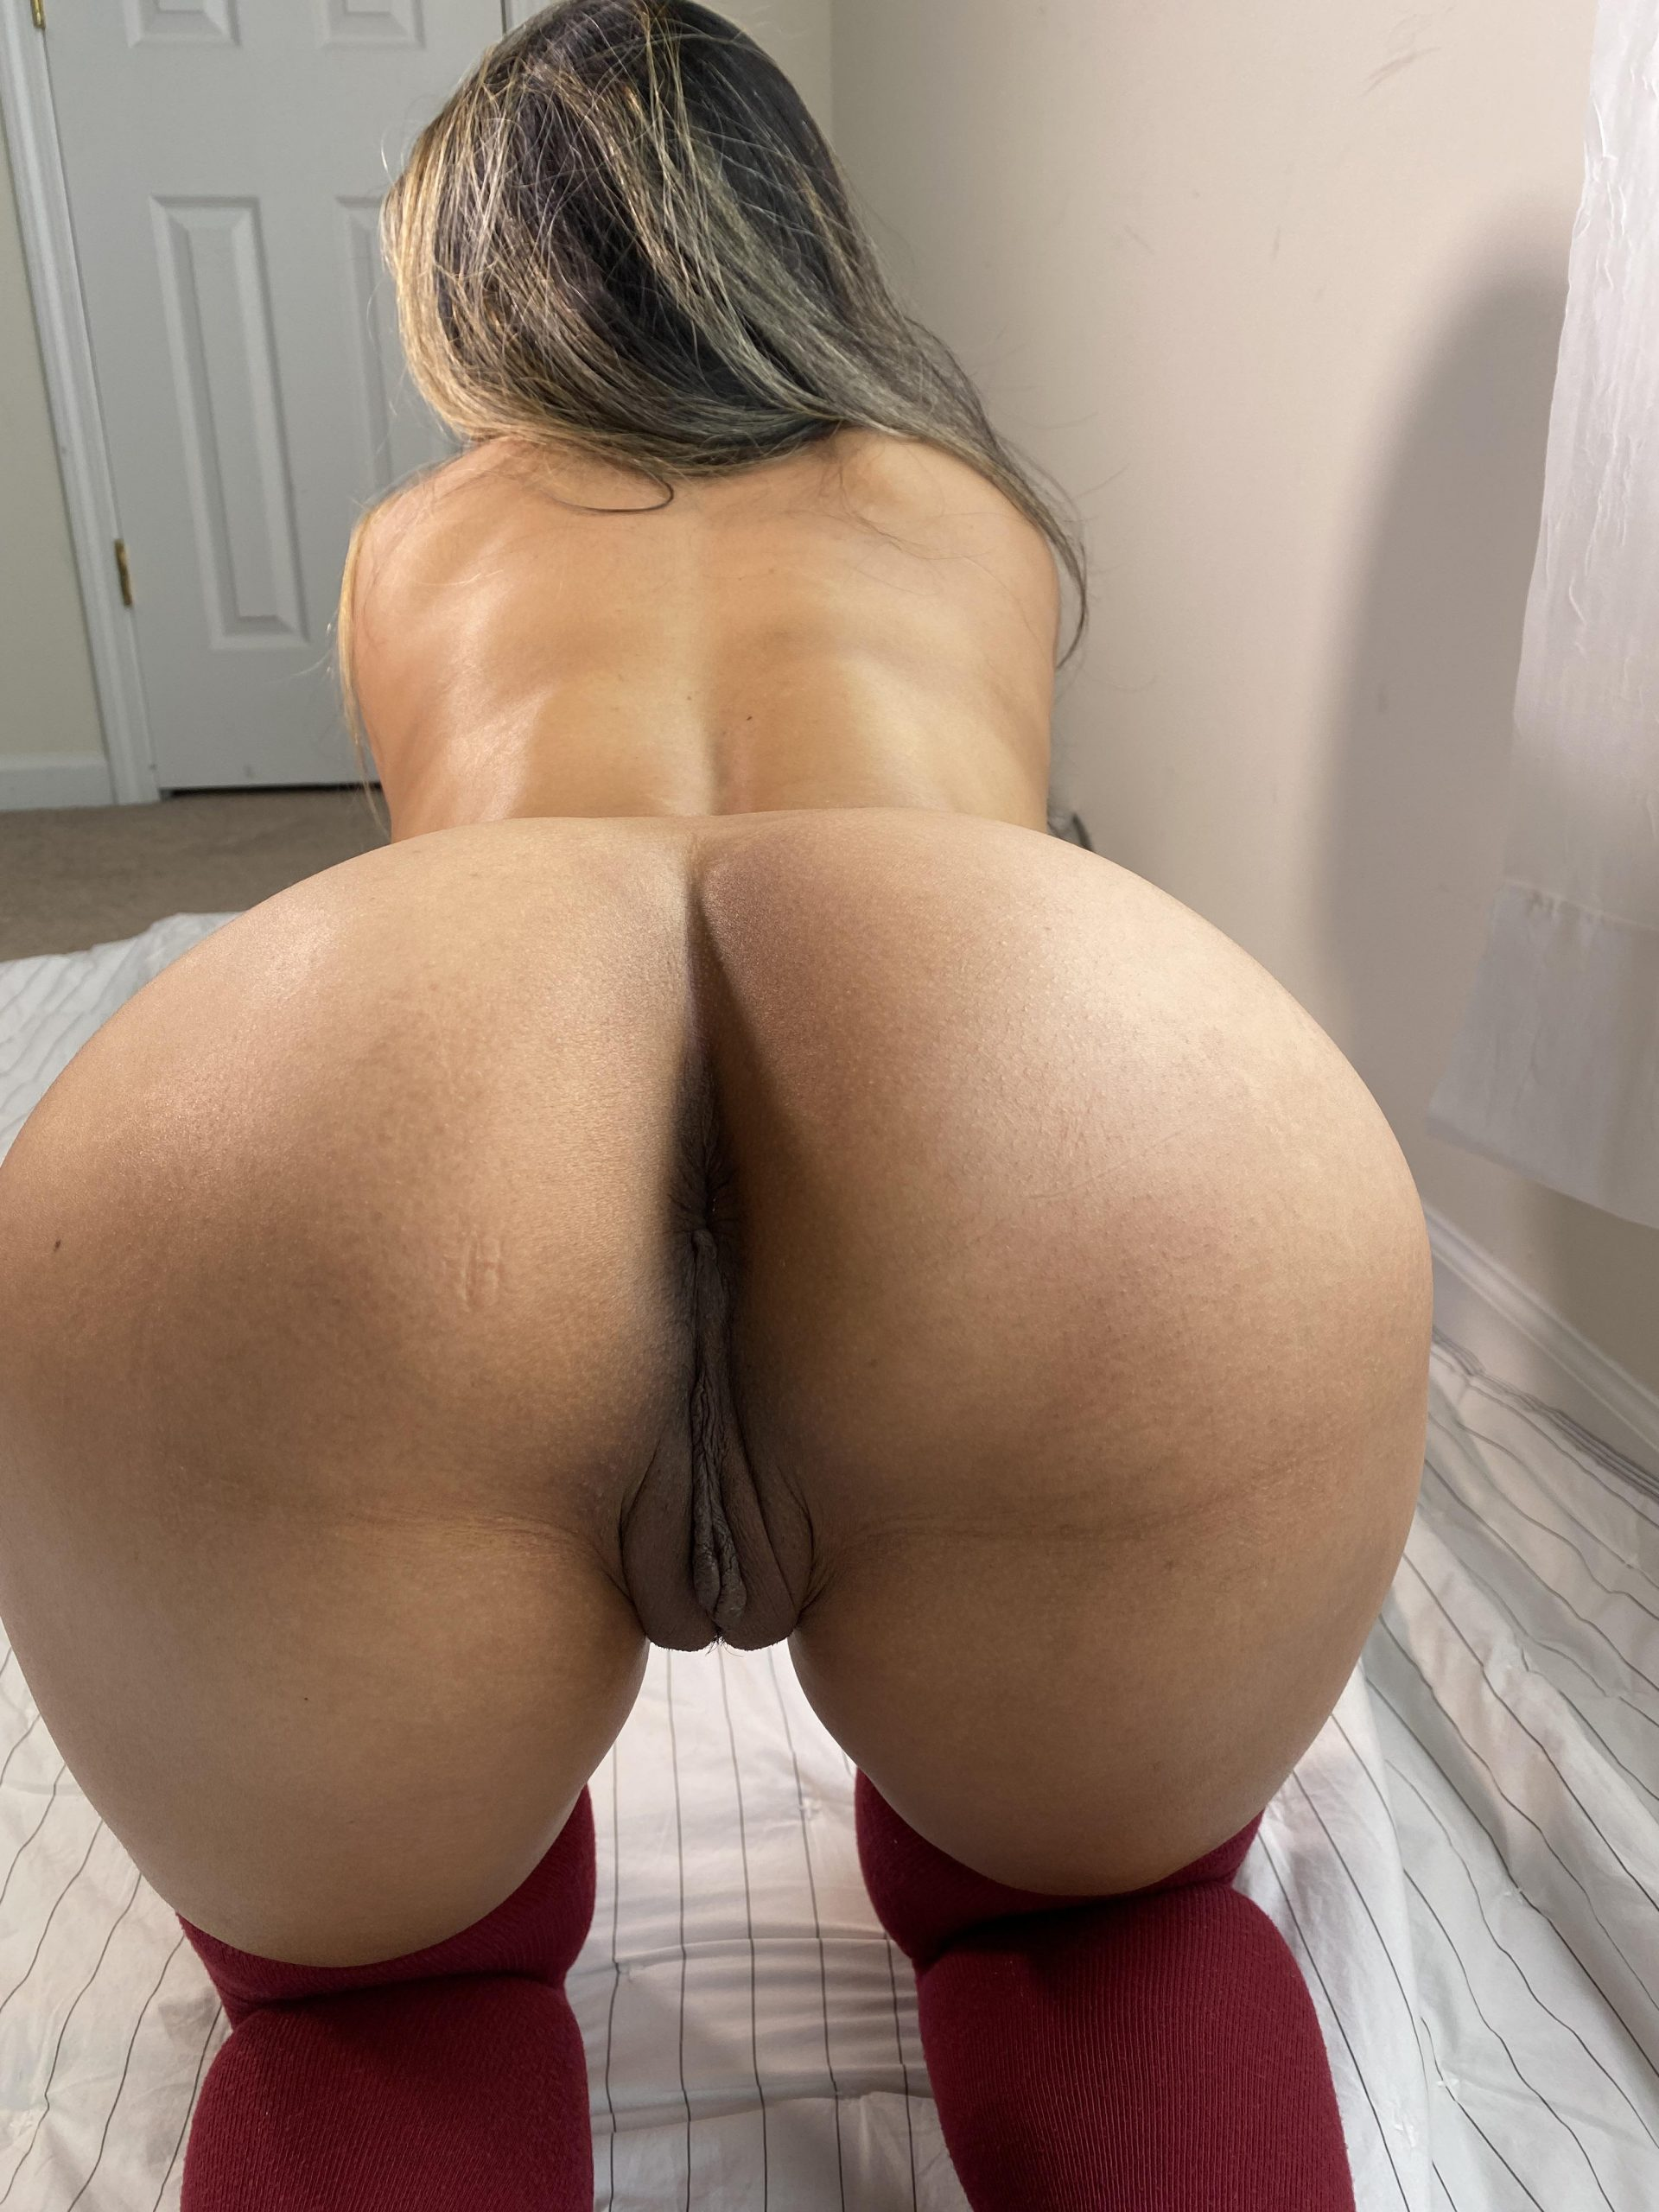 Would you fuck my juicy ass?